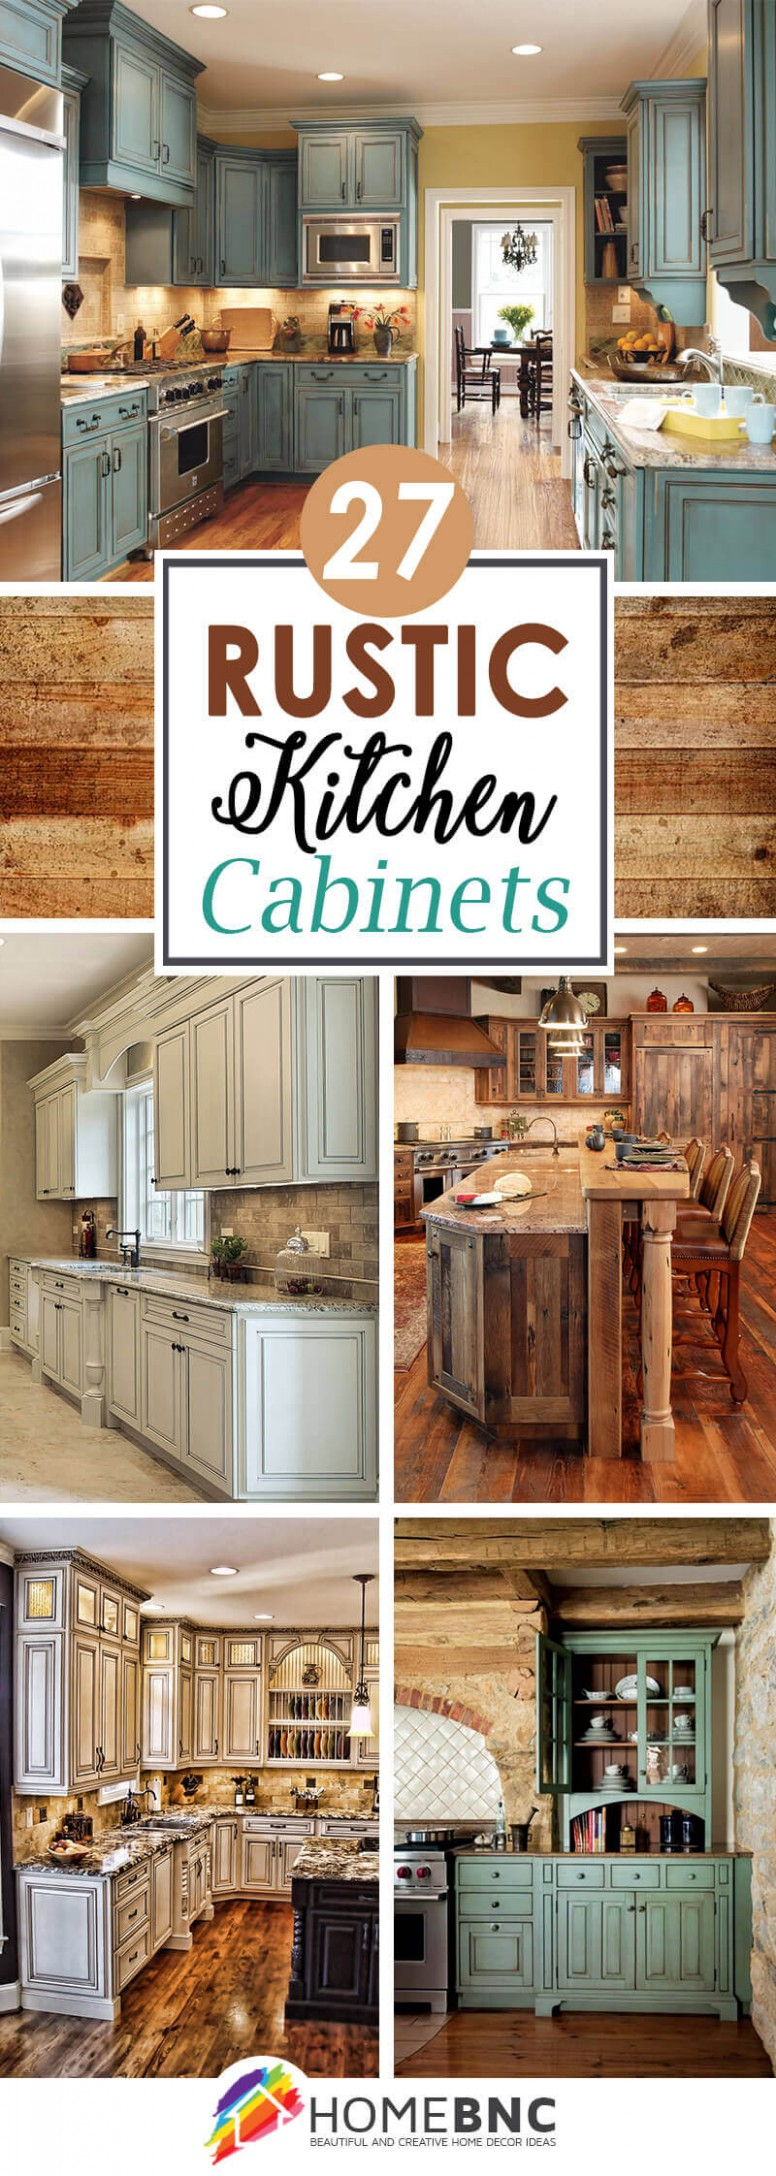 12 Best Rustic Kitchen Cabinet Ideas and Designs for 12 - Beautiful Kitchen Cabinets For Sale